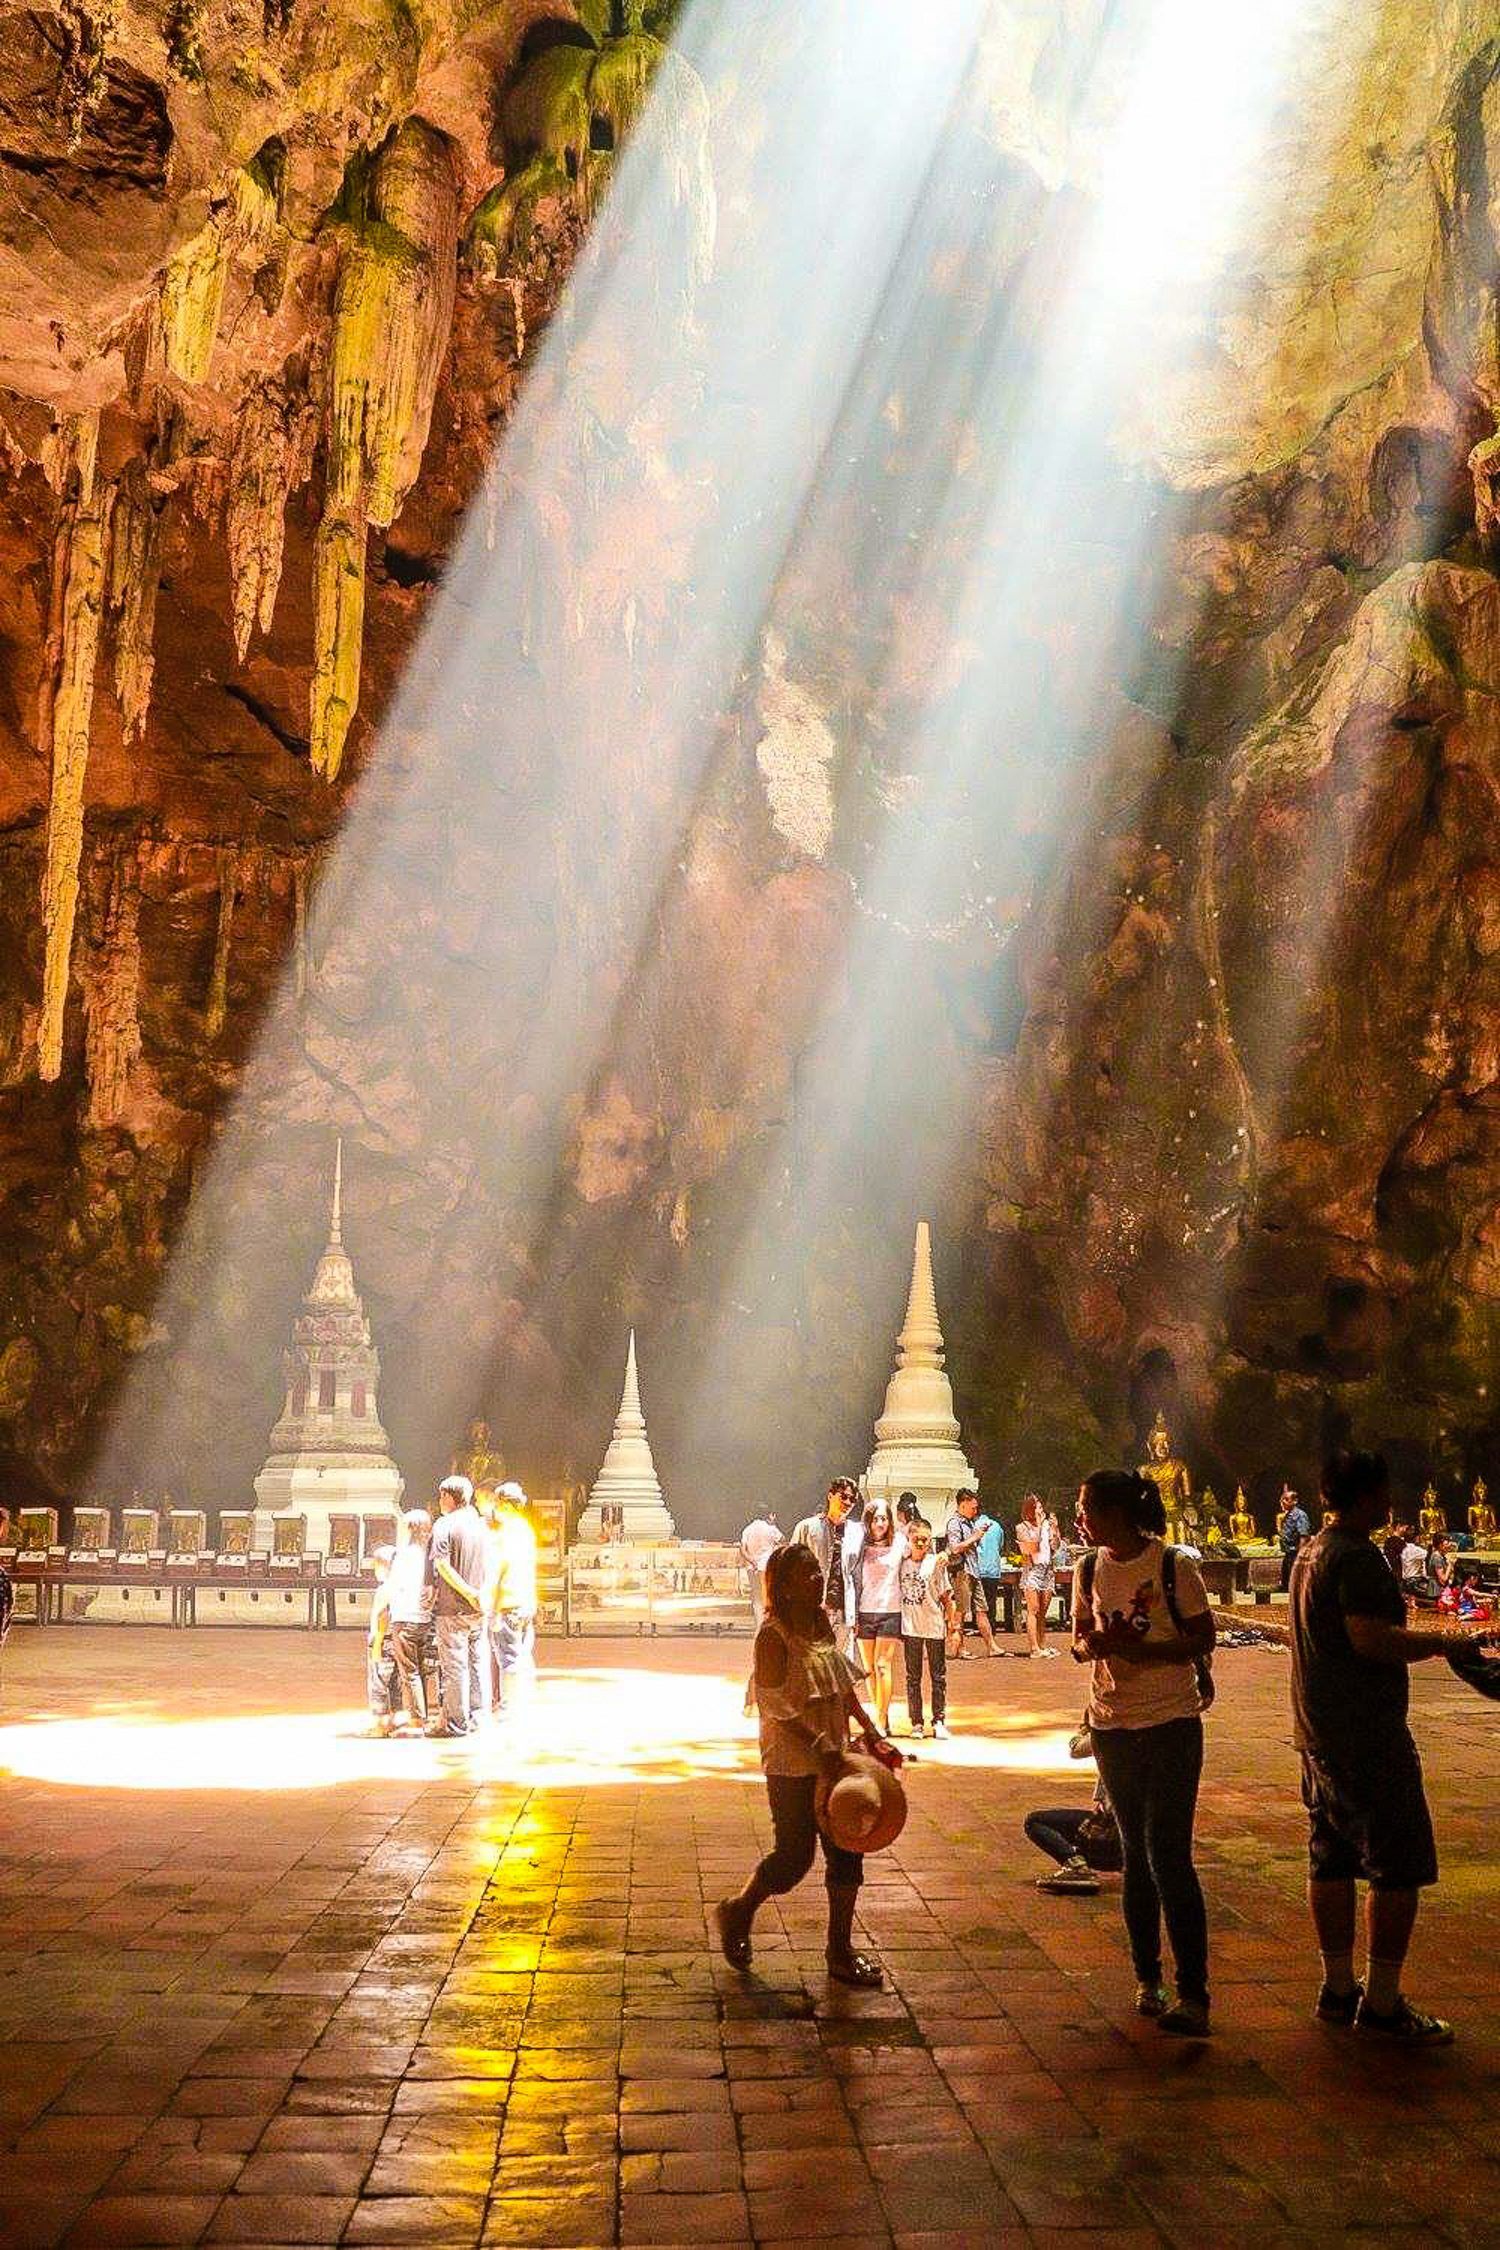 Sun rays in Tham Khao Luang Cave, Thailand.